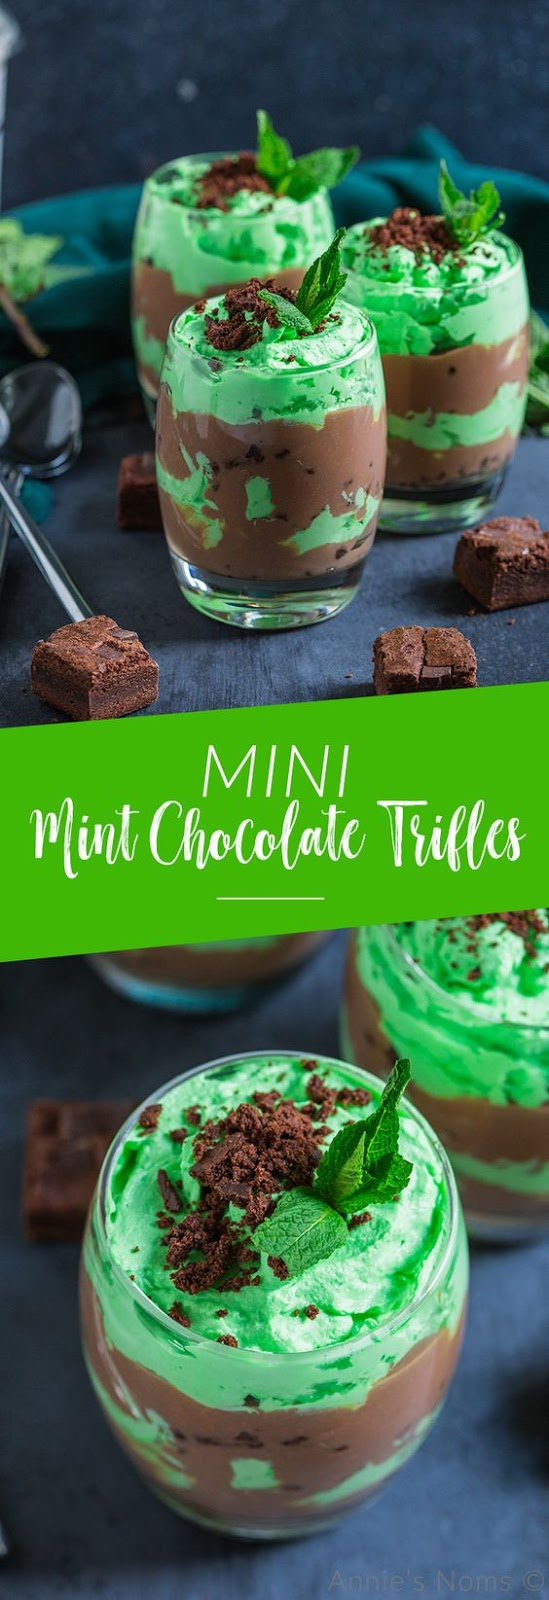 MINI MINT CHOCOLATE TRIFLES #minimint #chocolate #mint #trifles #cake #cakerecipes #dessert #dessertrecipes  #easydessertrecipes